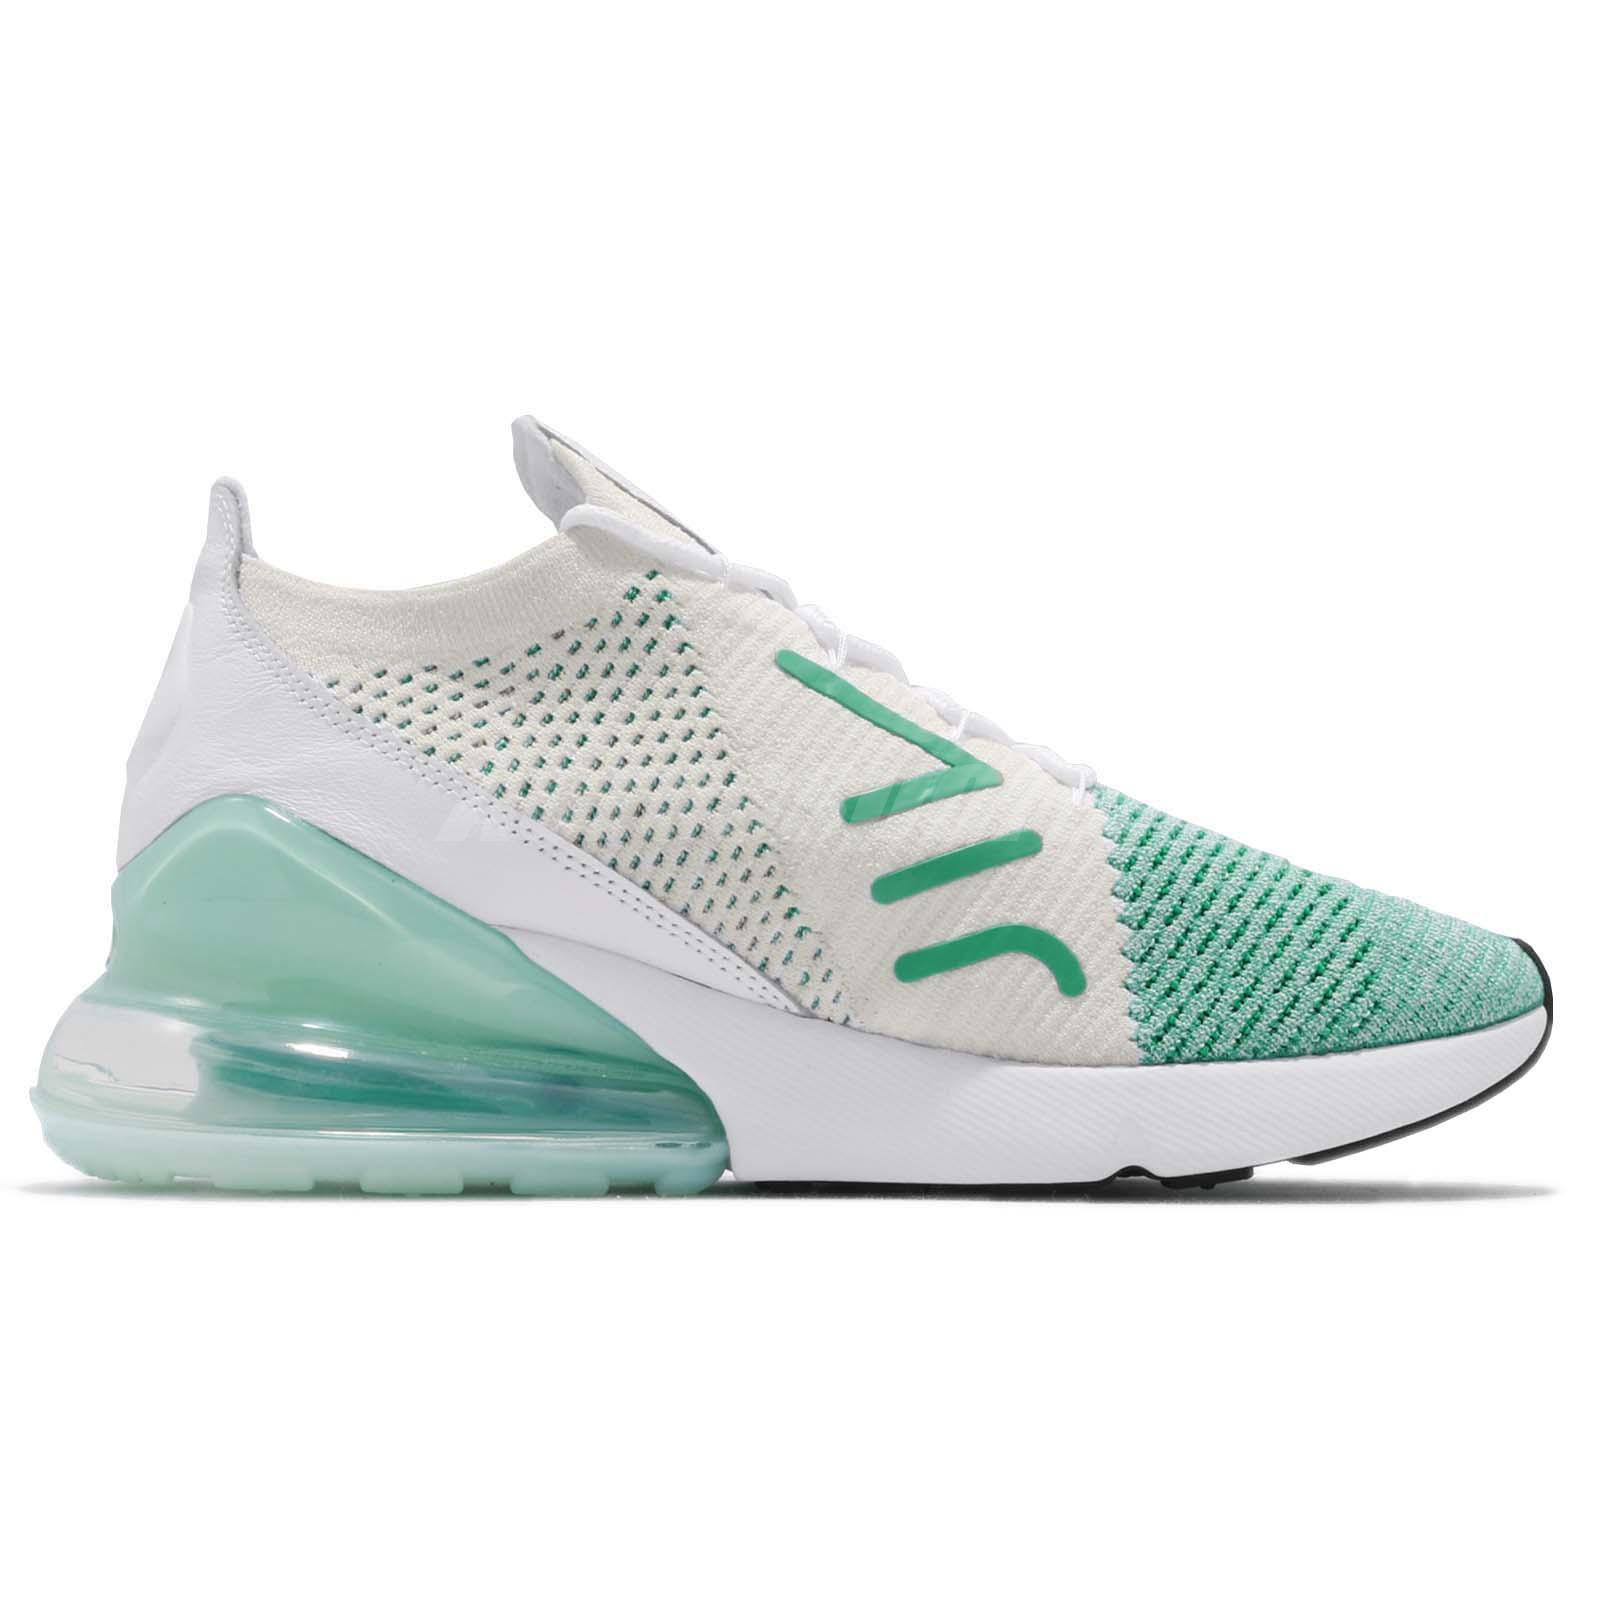 Nike Wmns Air Max 270 Flyknit Igloo White Women Running Shoes